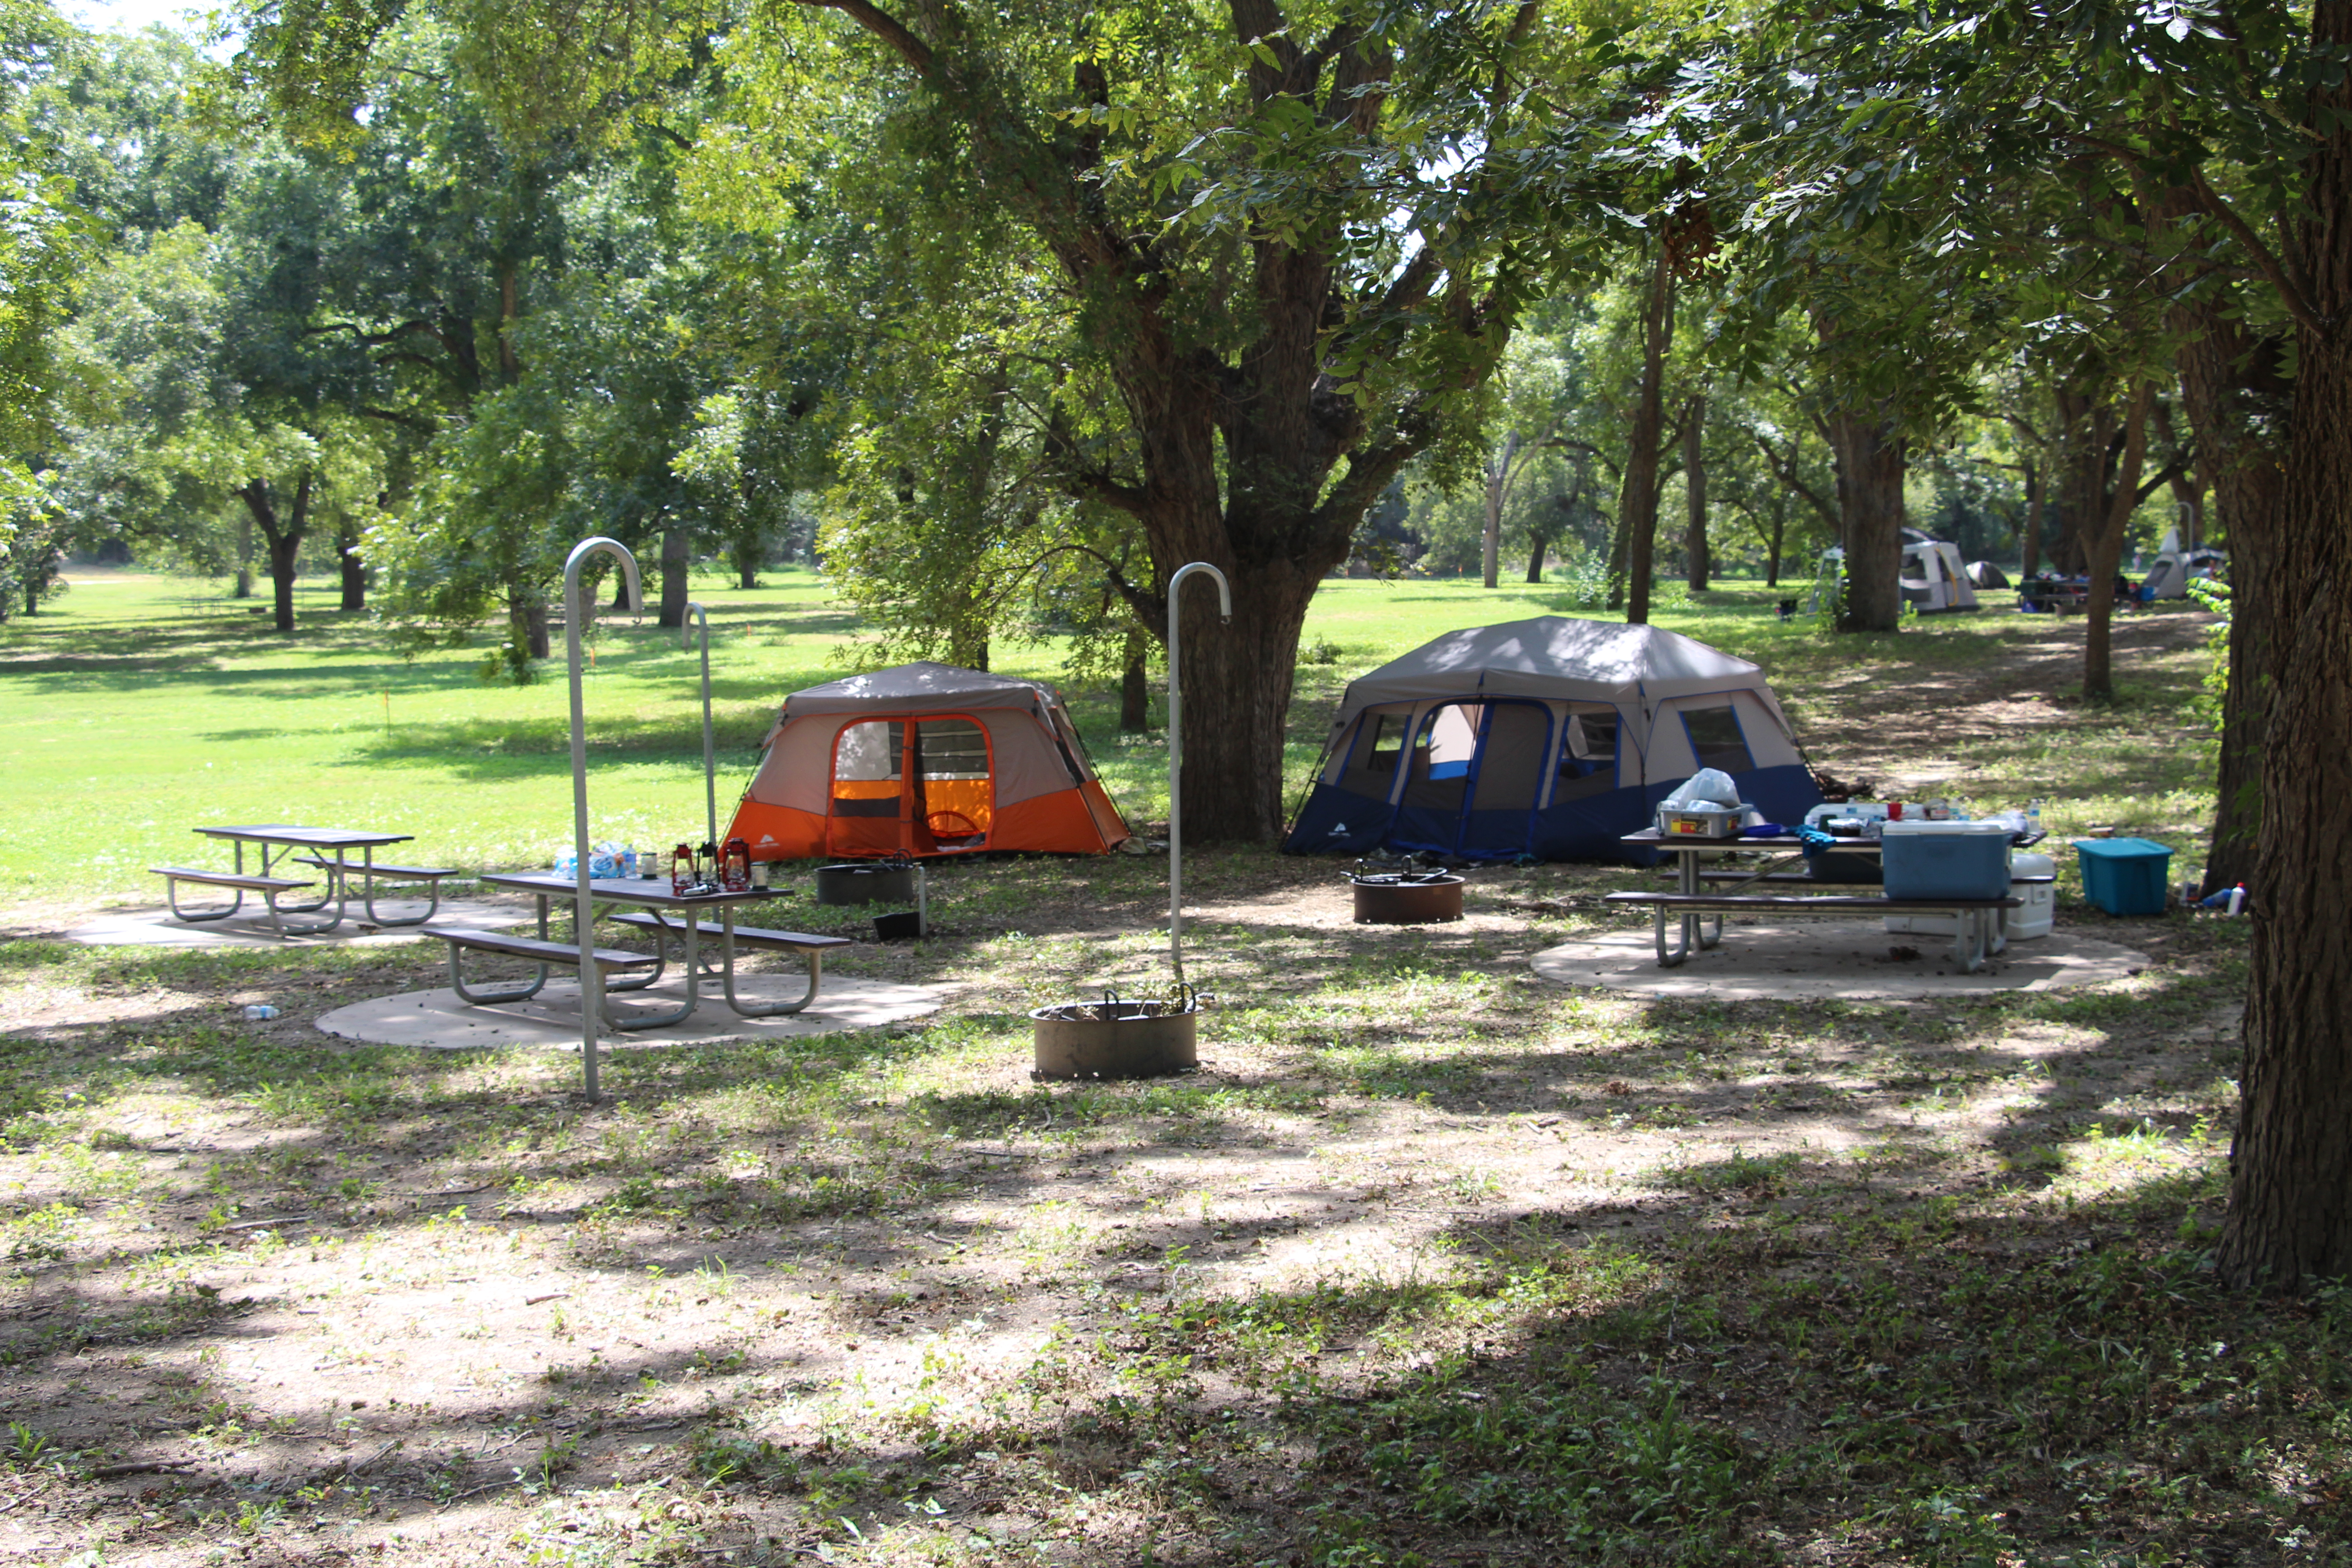 Camping at John William Helton Nature Park